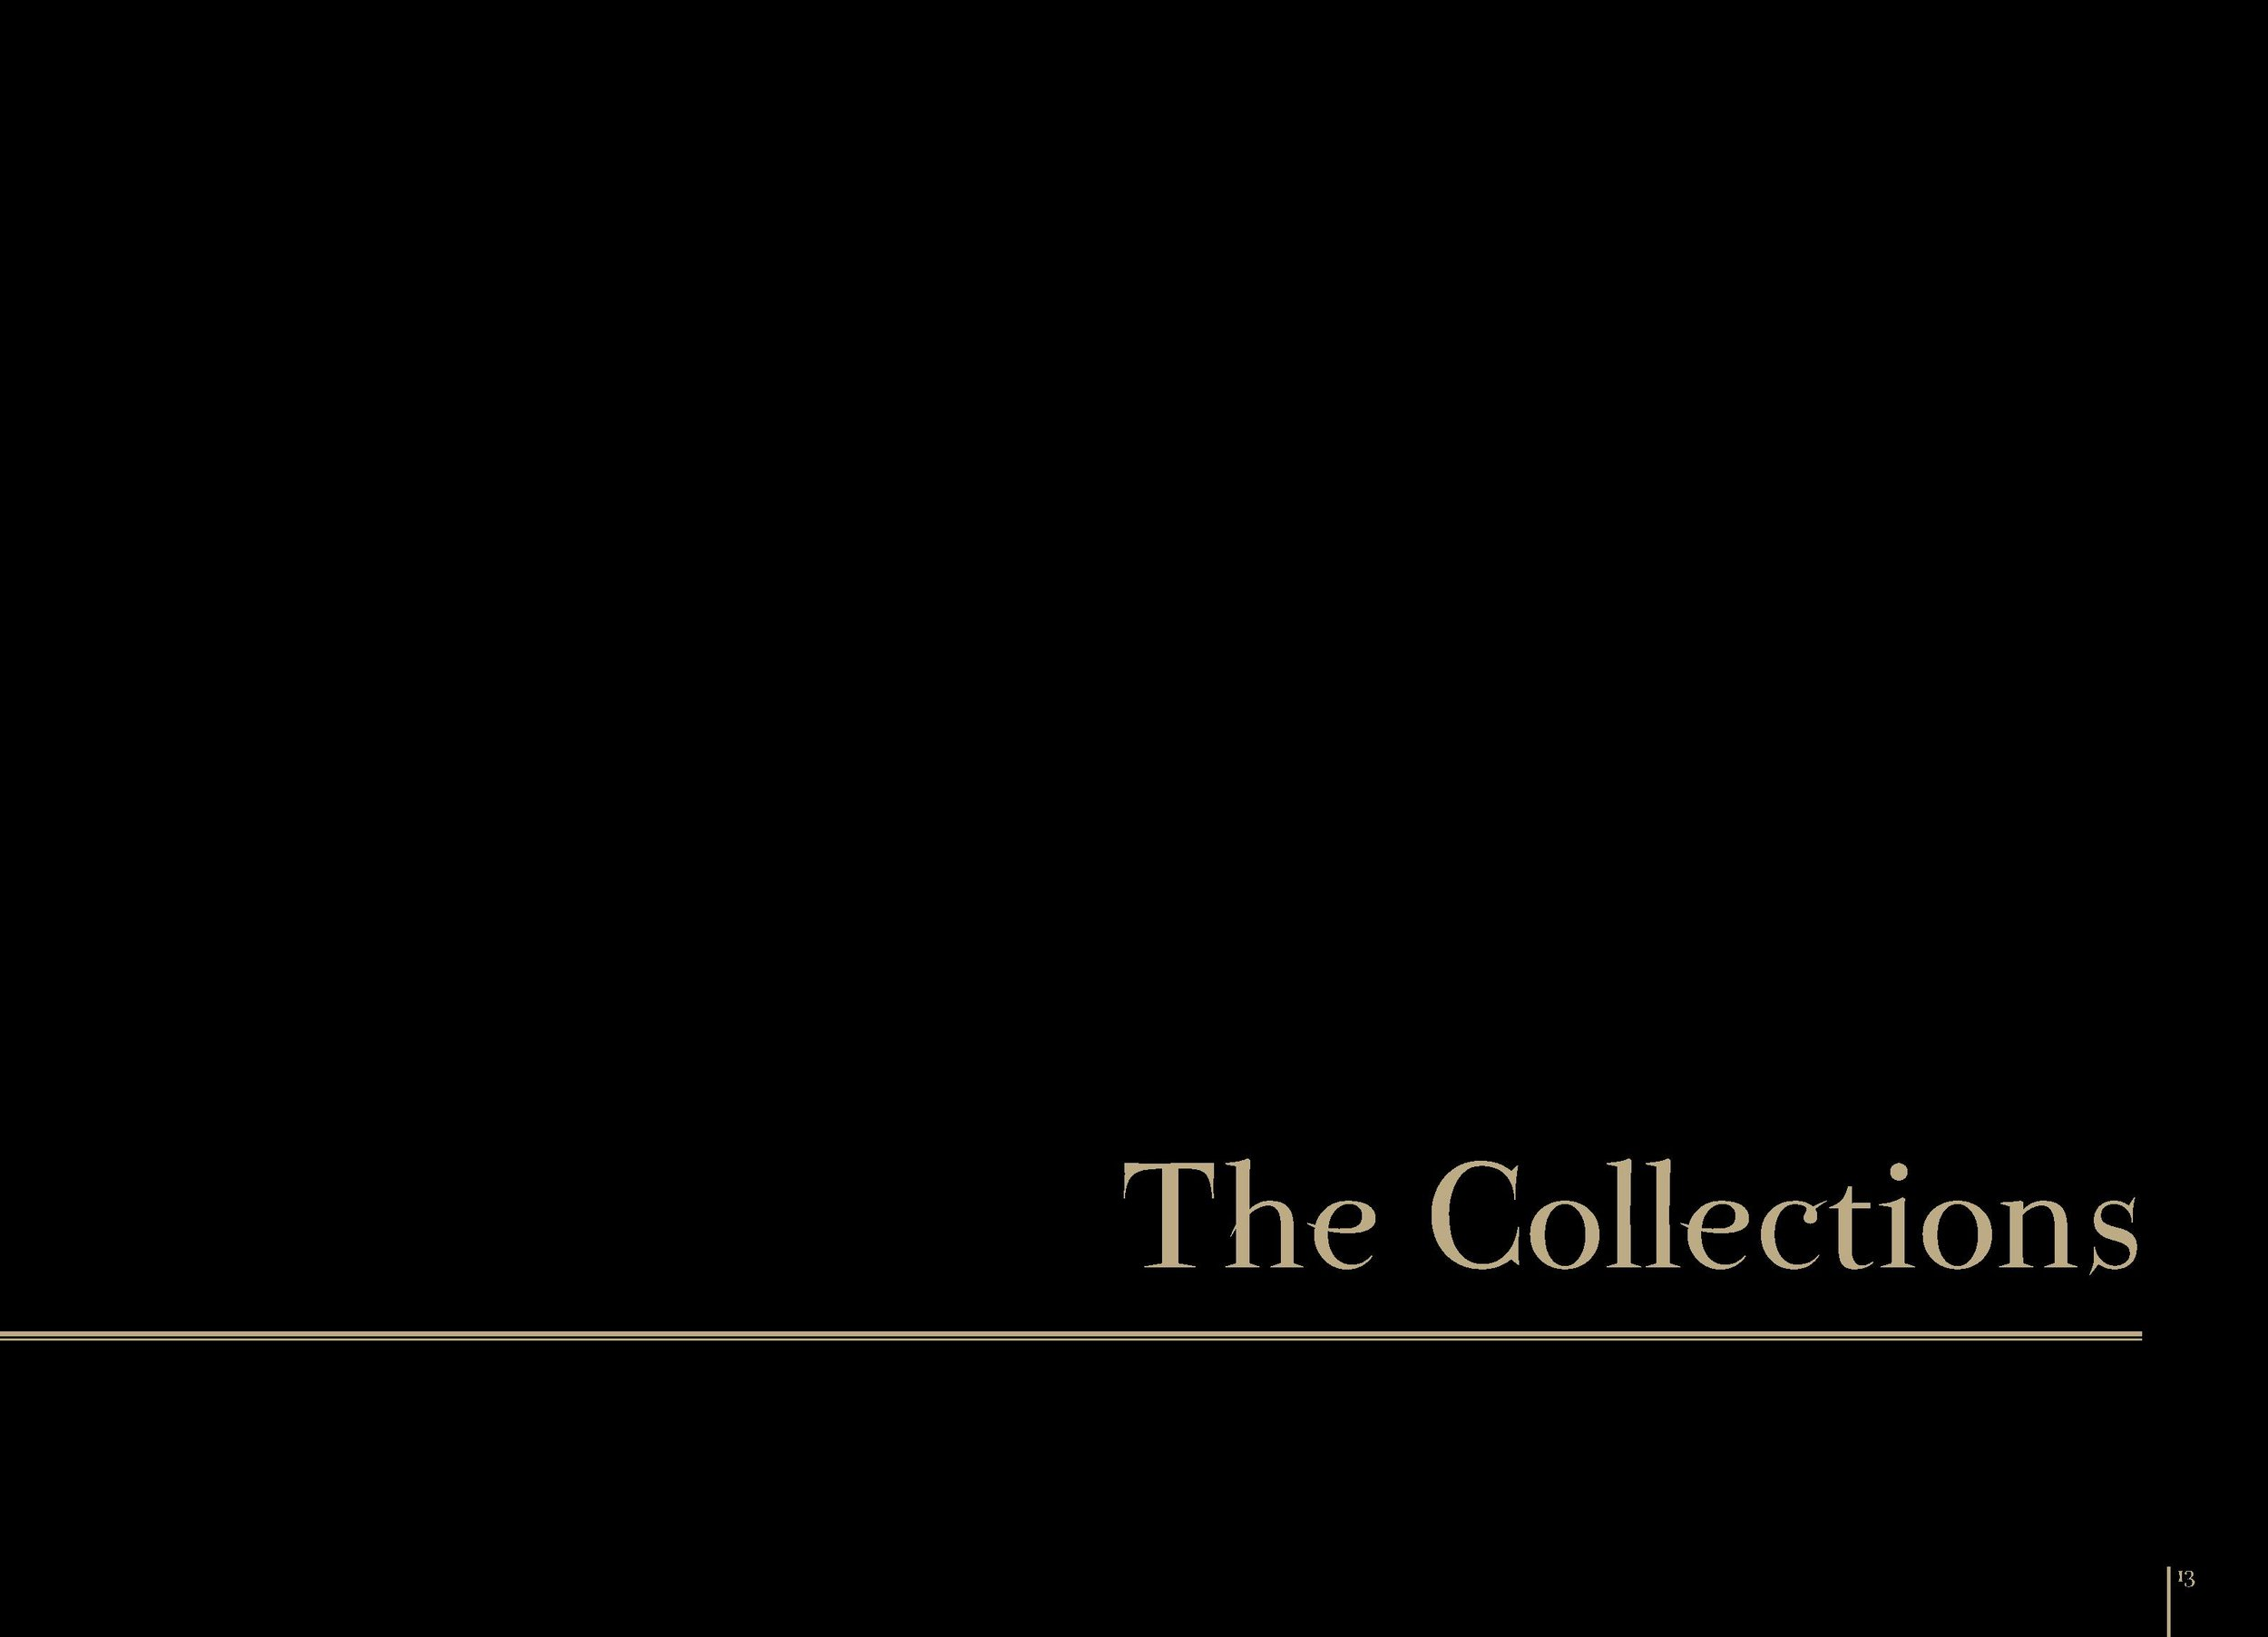 The Collections